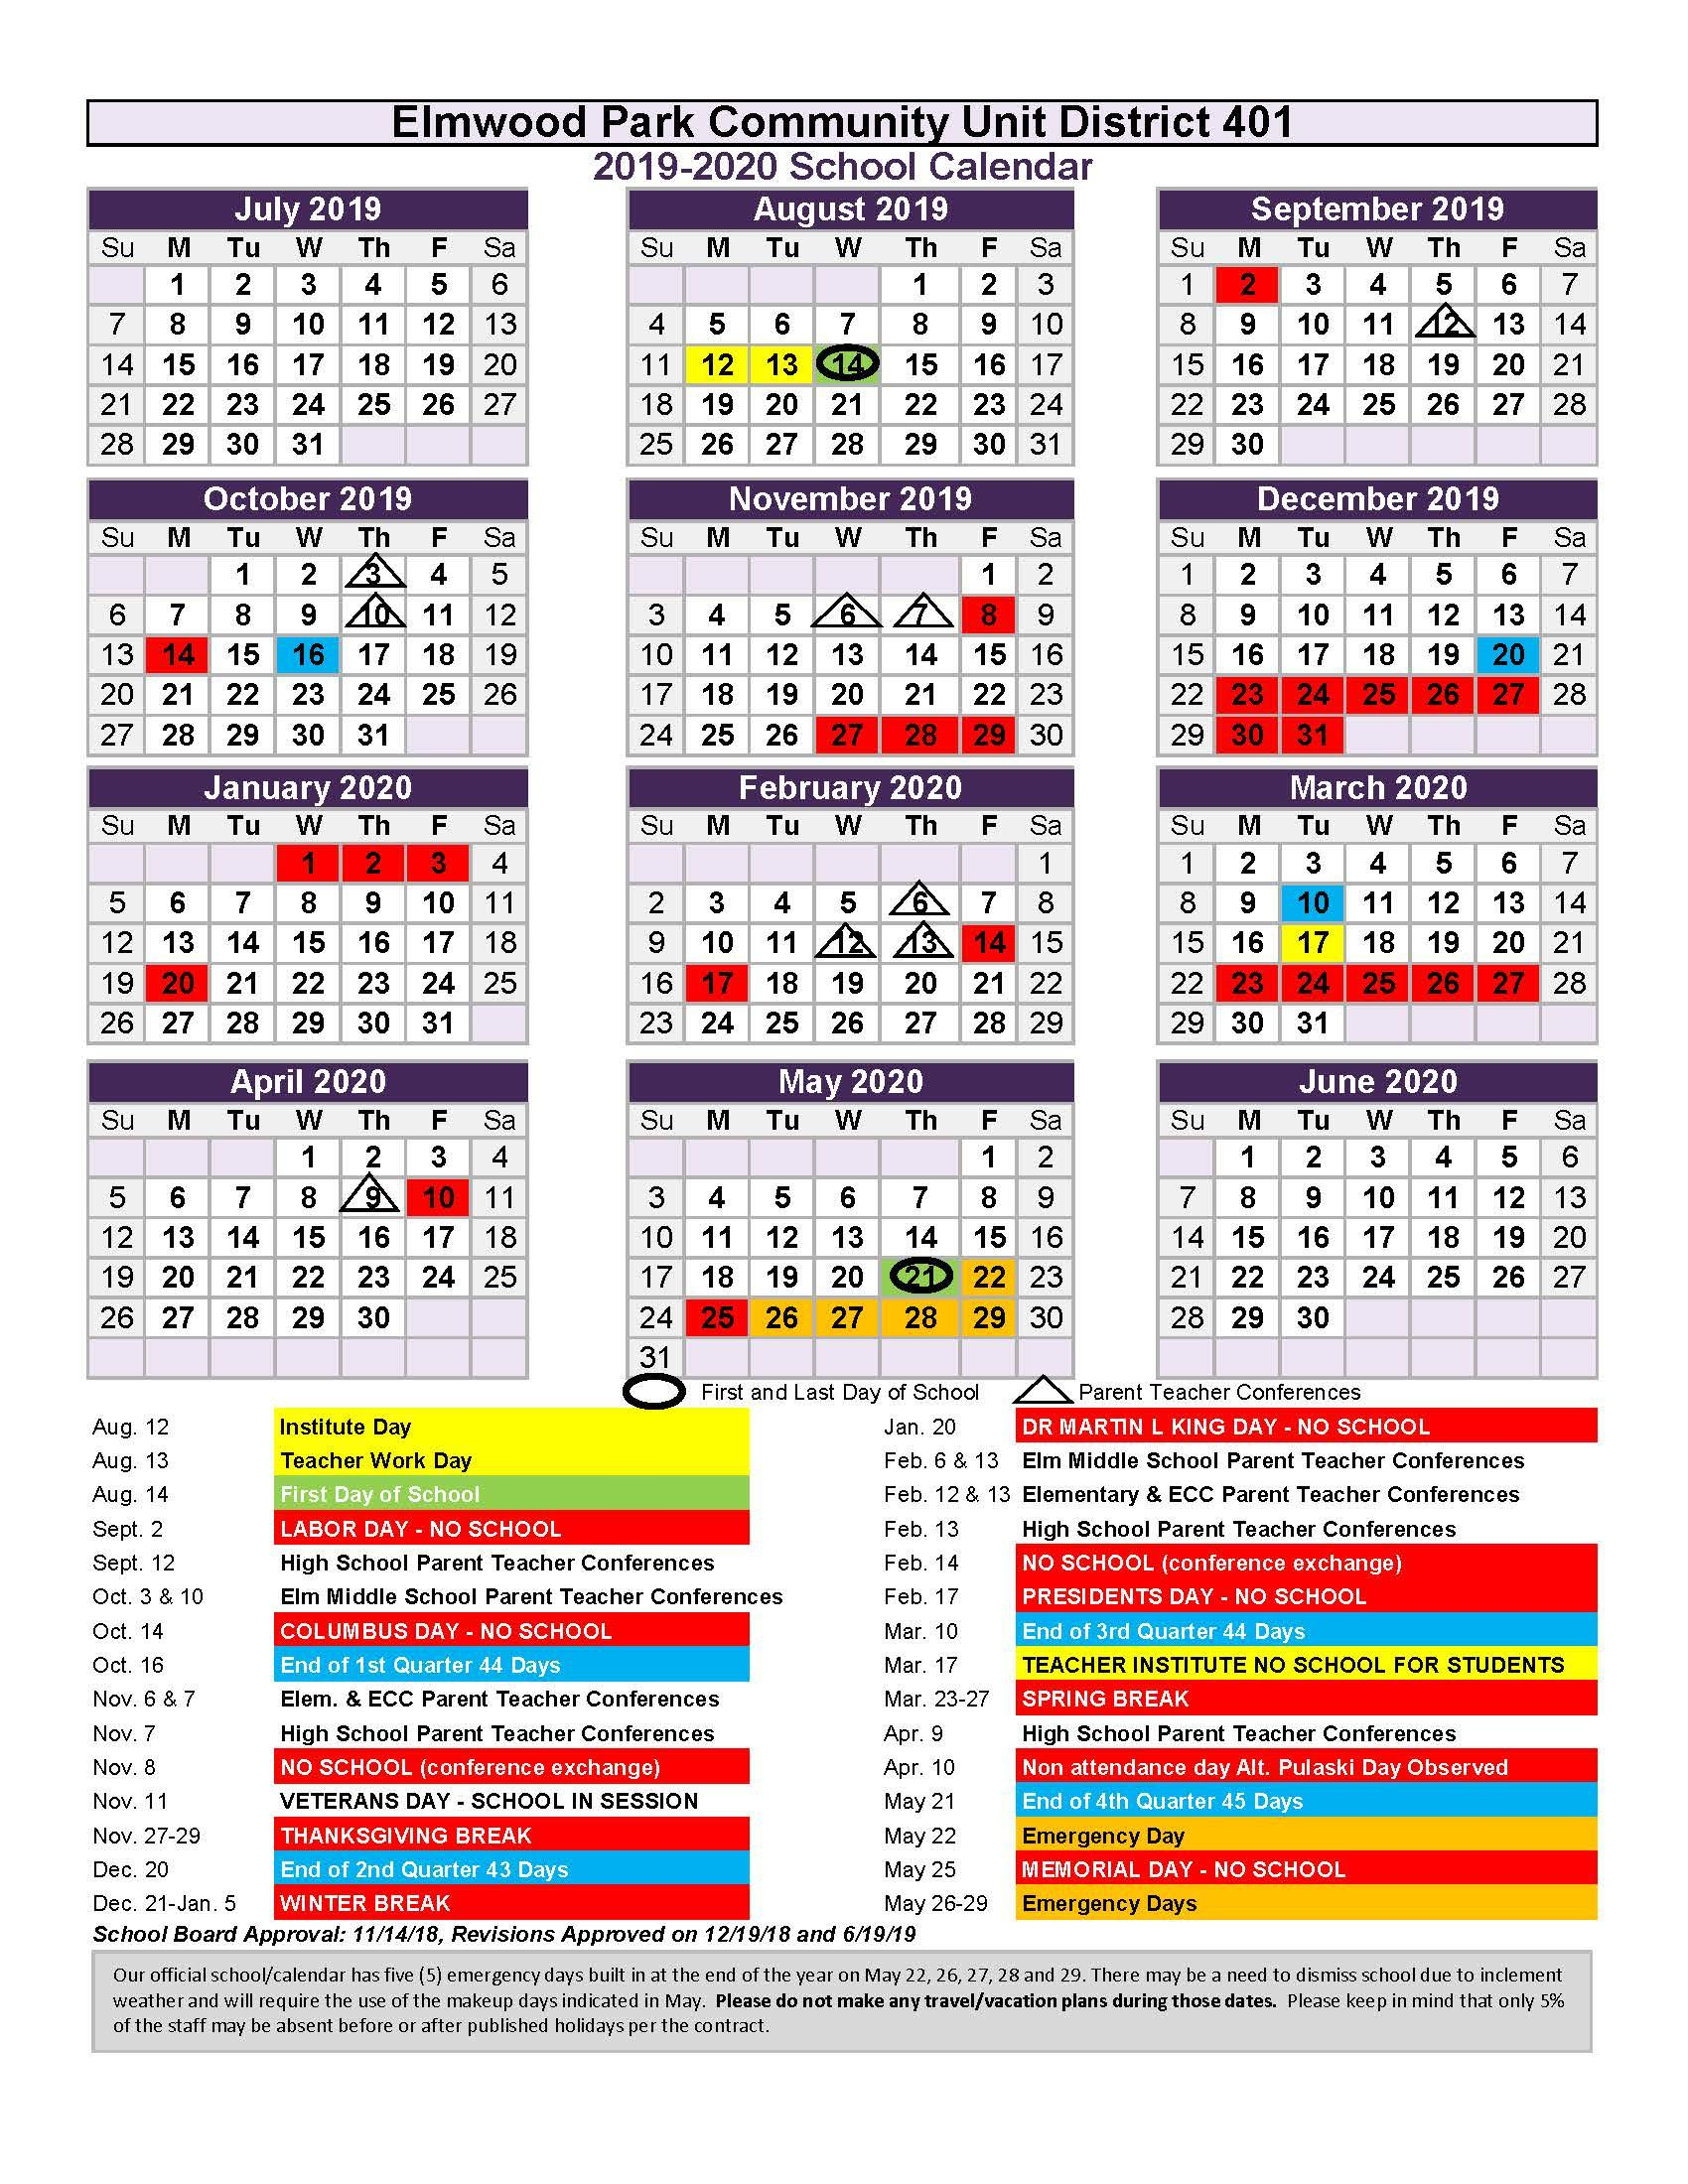 2019-20 District 401 School Year Calendar